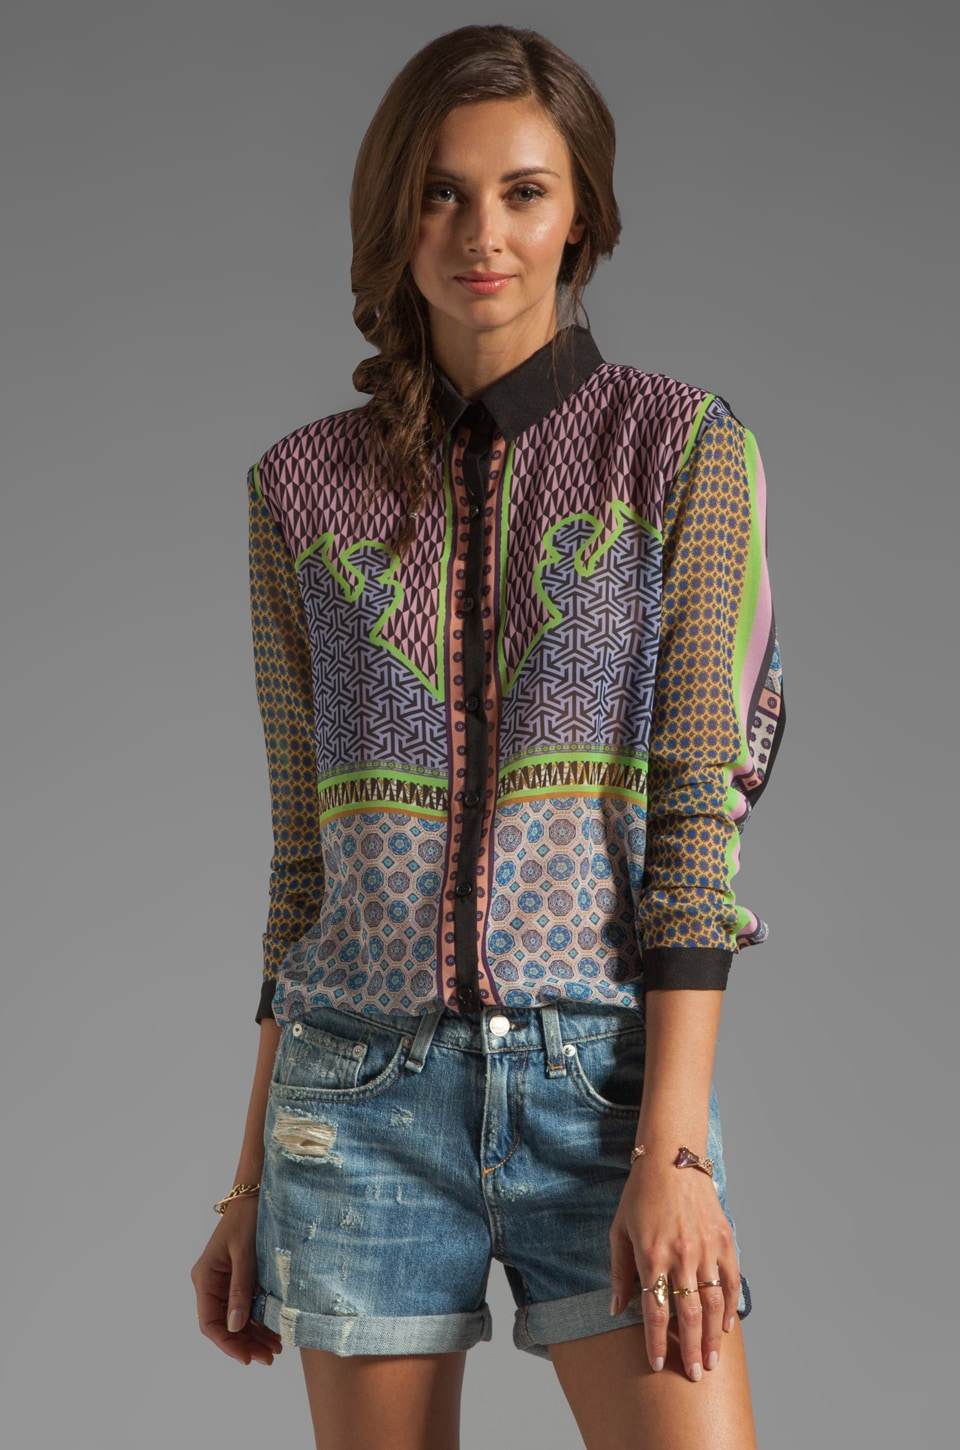 Clover Canyon Neon Cowboy Blouse in Multi